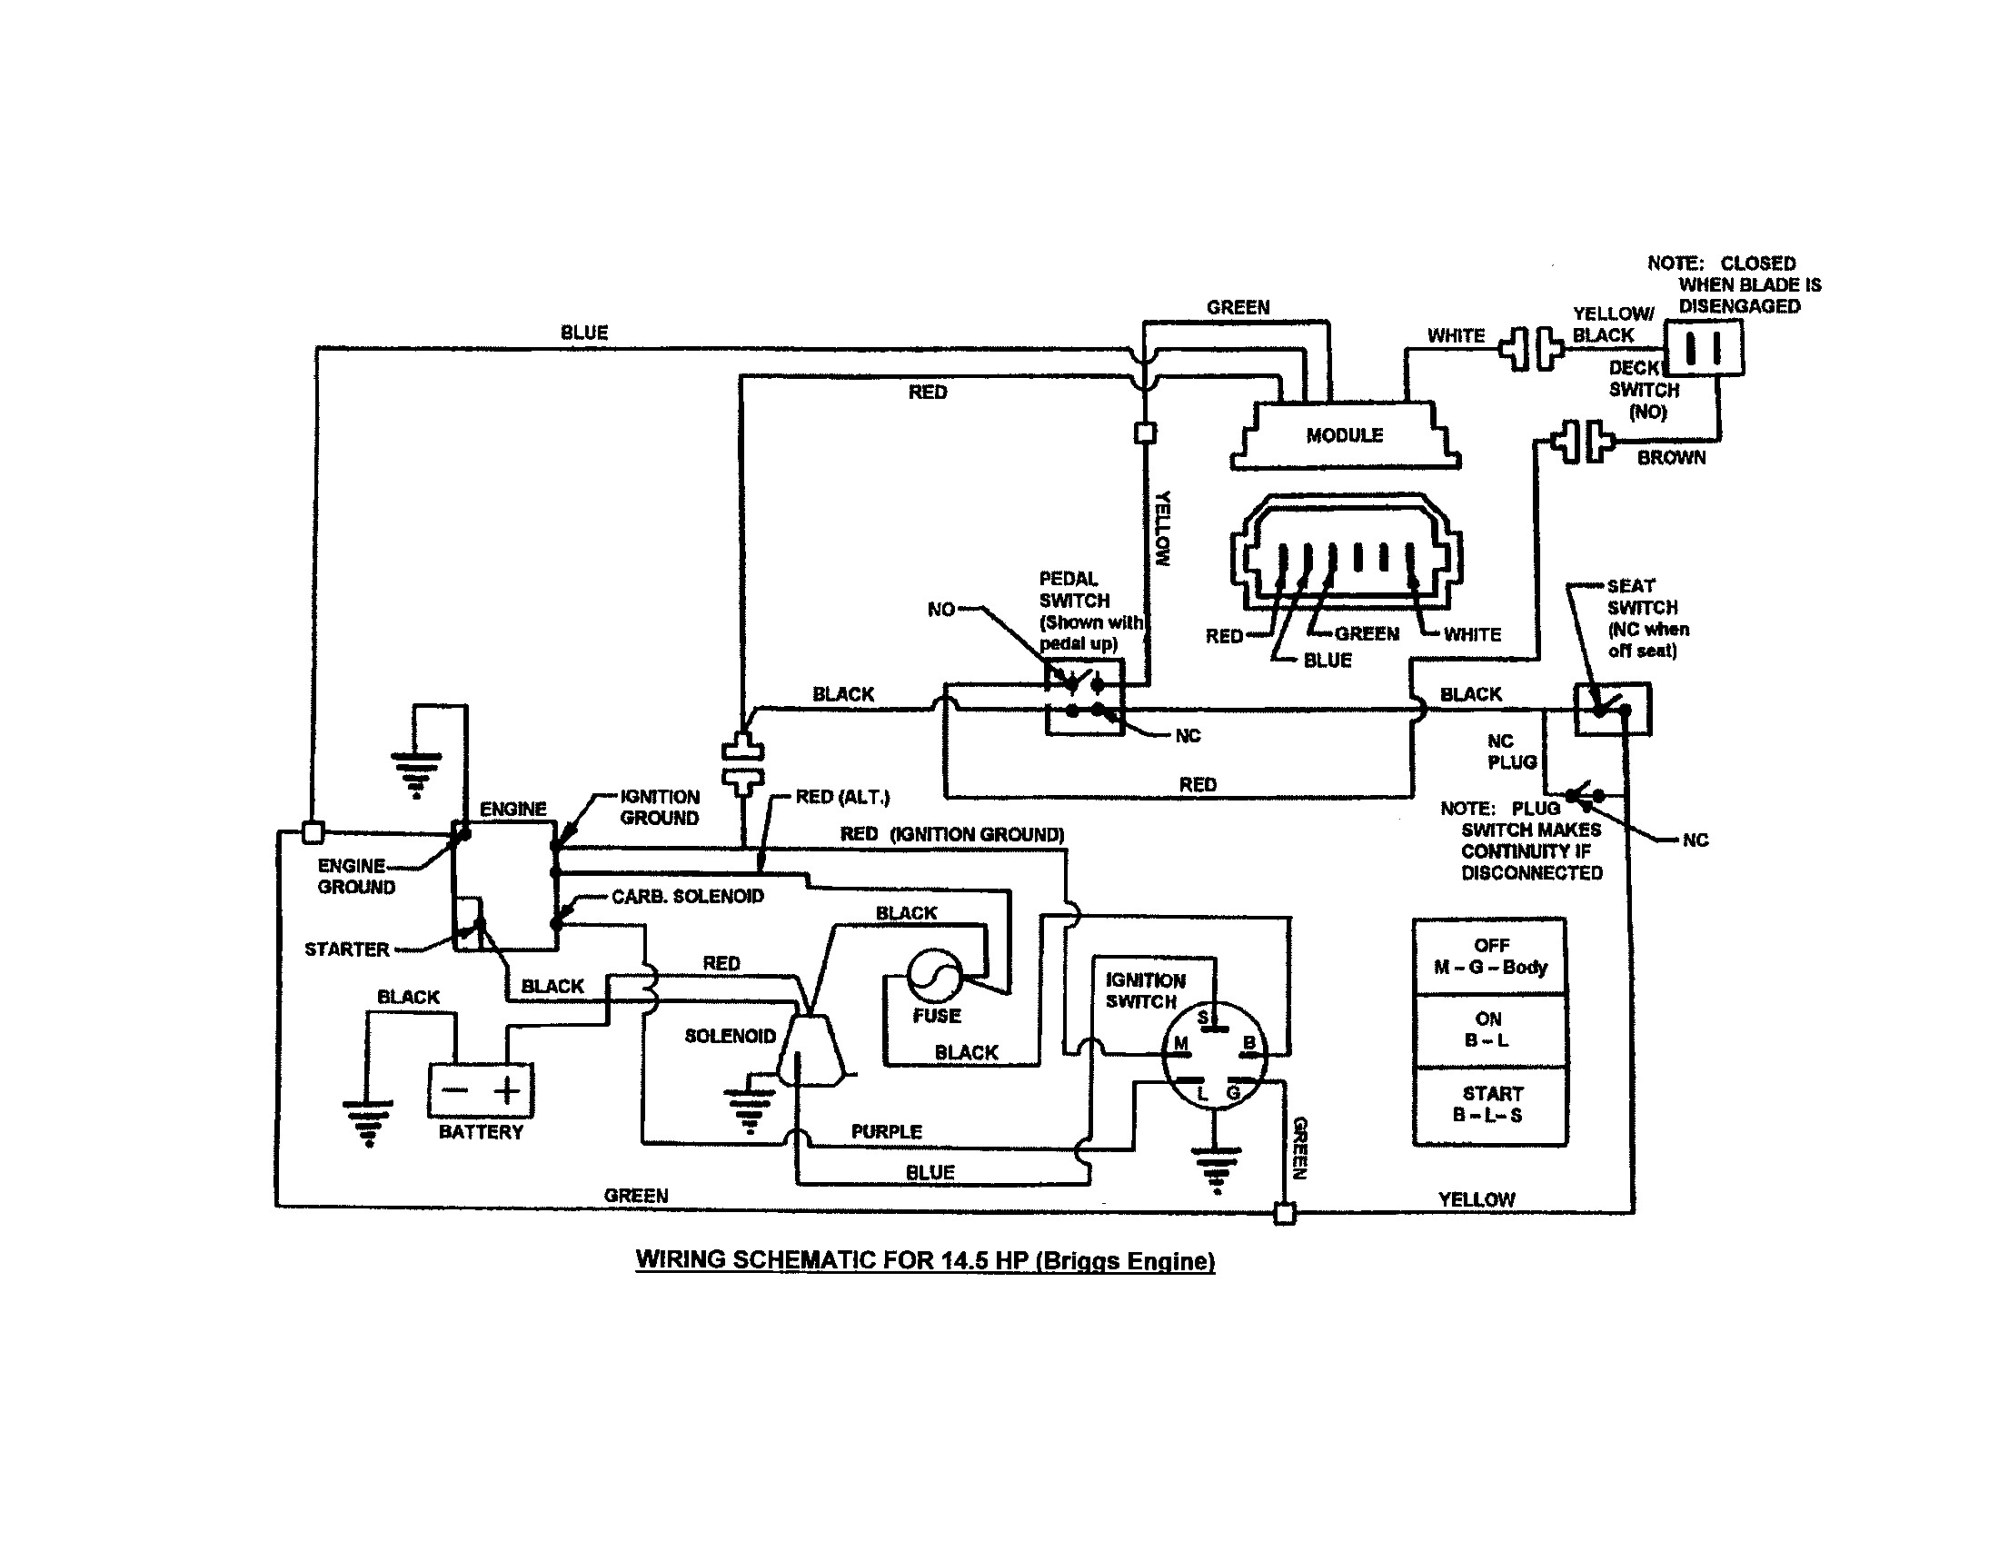 hight resolution of scotts 2554 wiring harness schema diagram database scotts 2554 wiring harnes